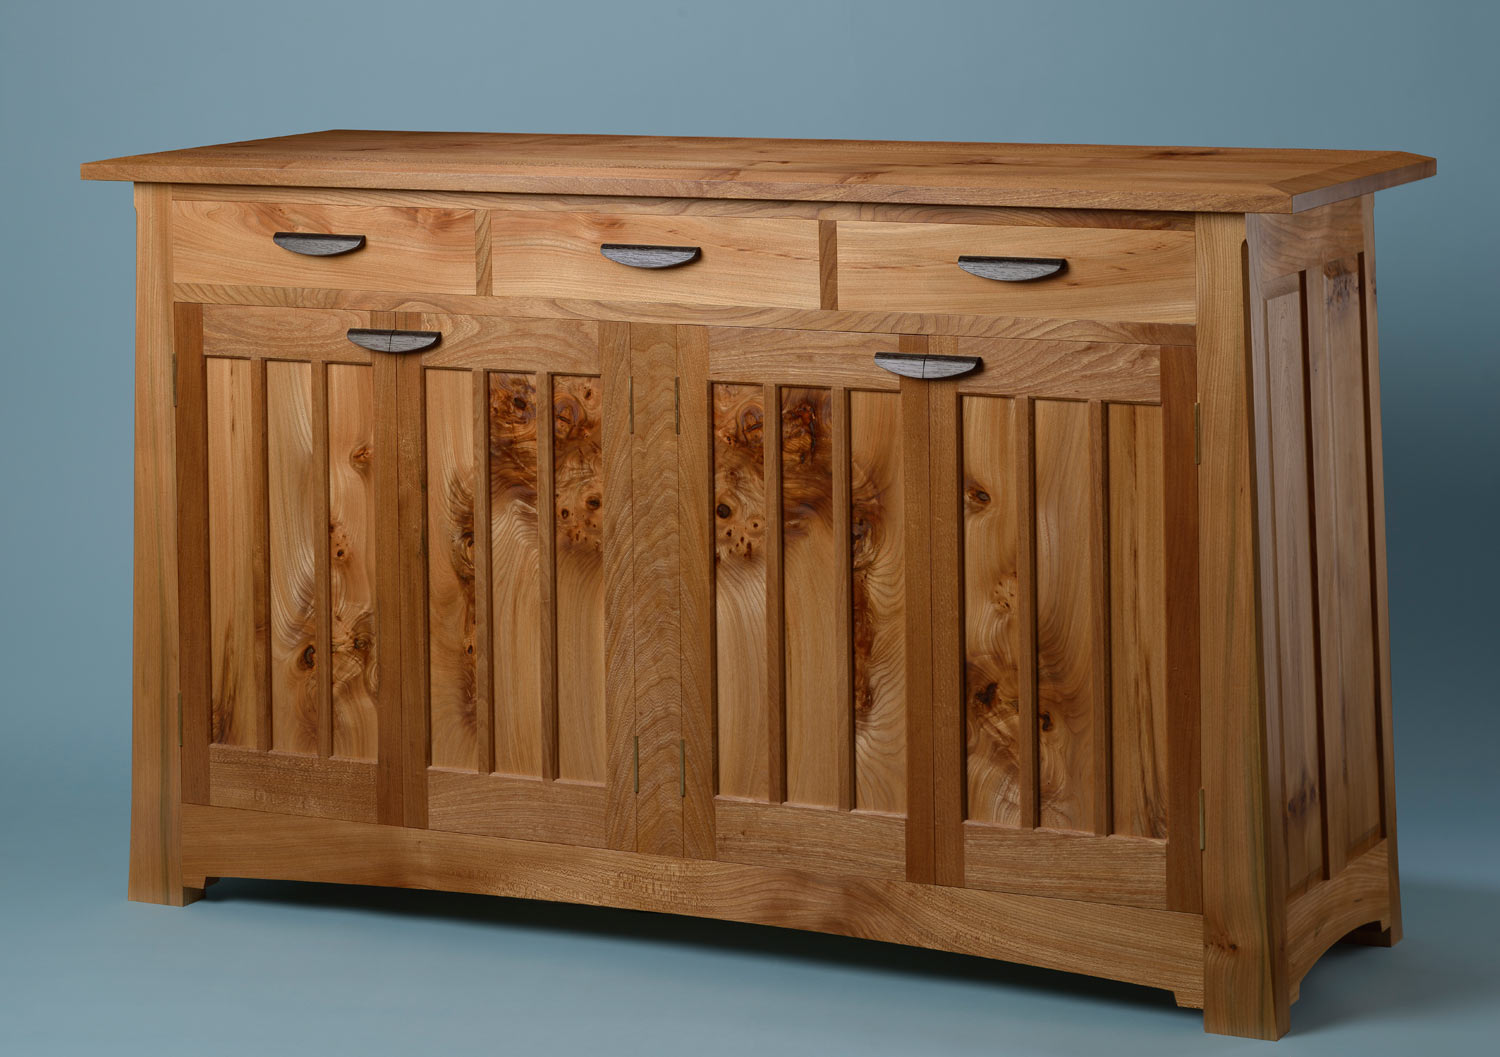 Buddleigh cabinet